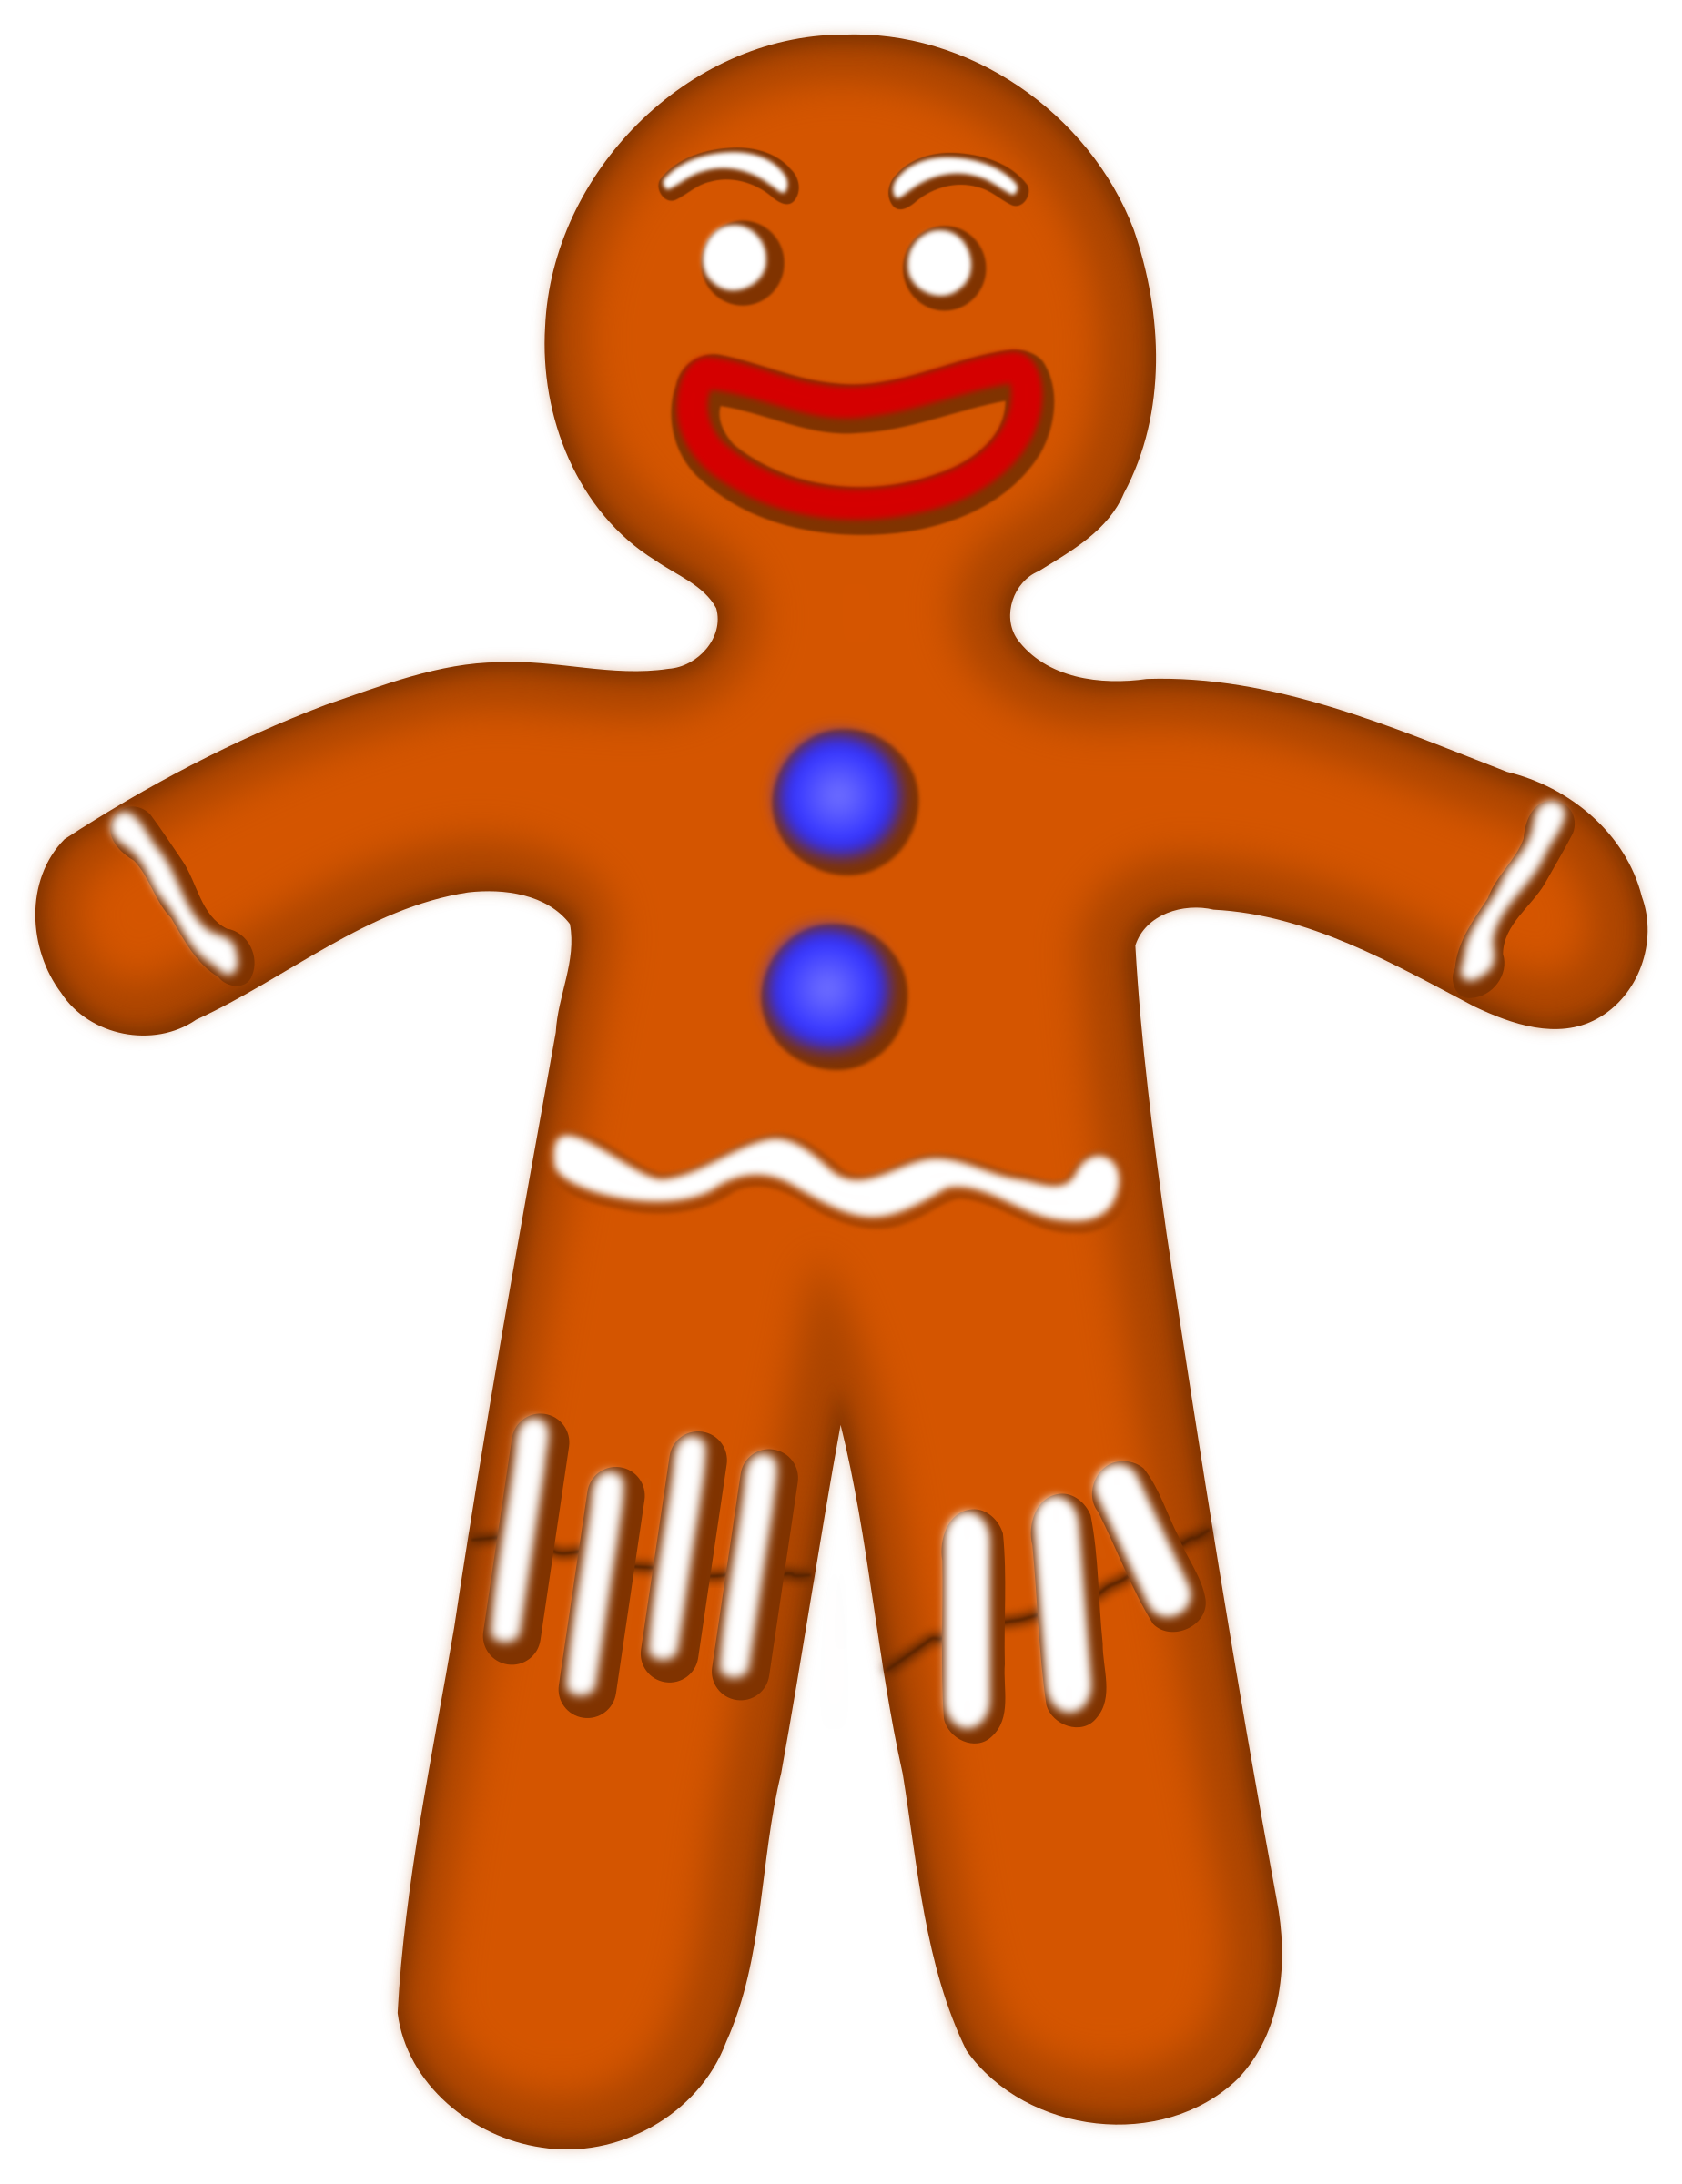 gingerbread man by jarda